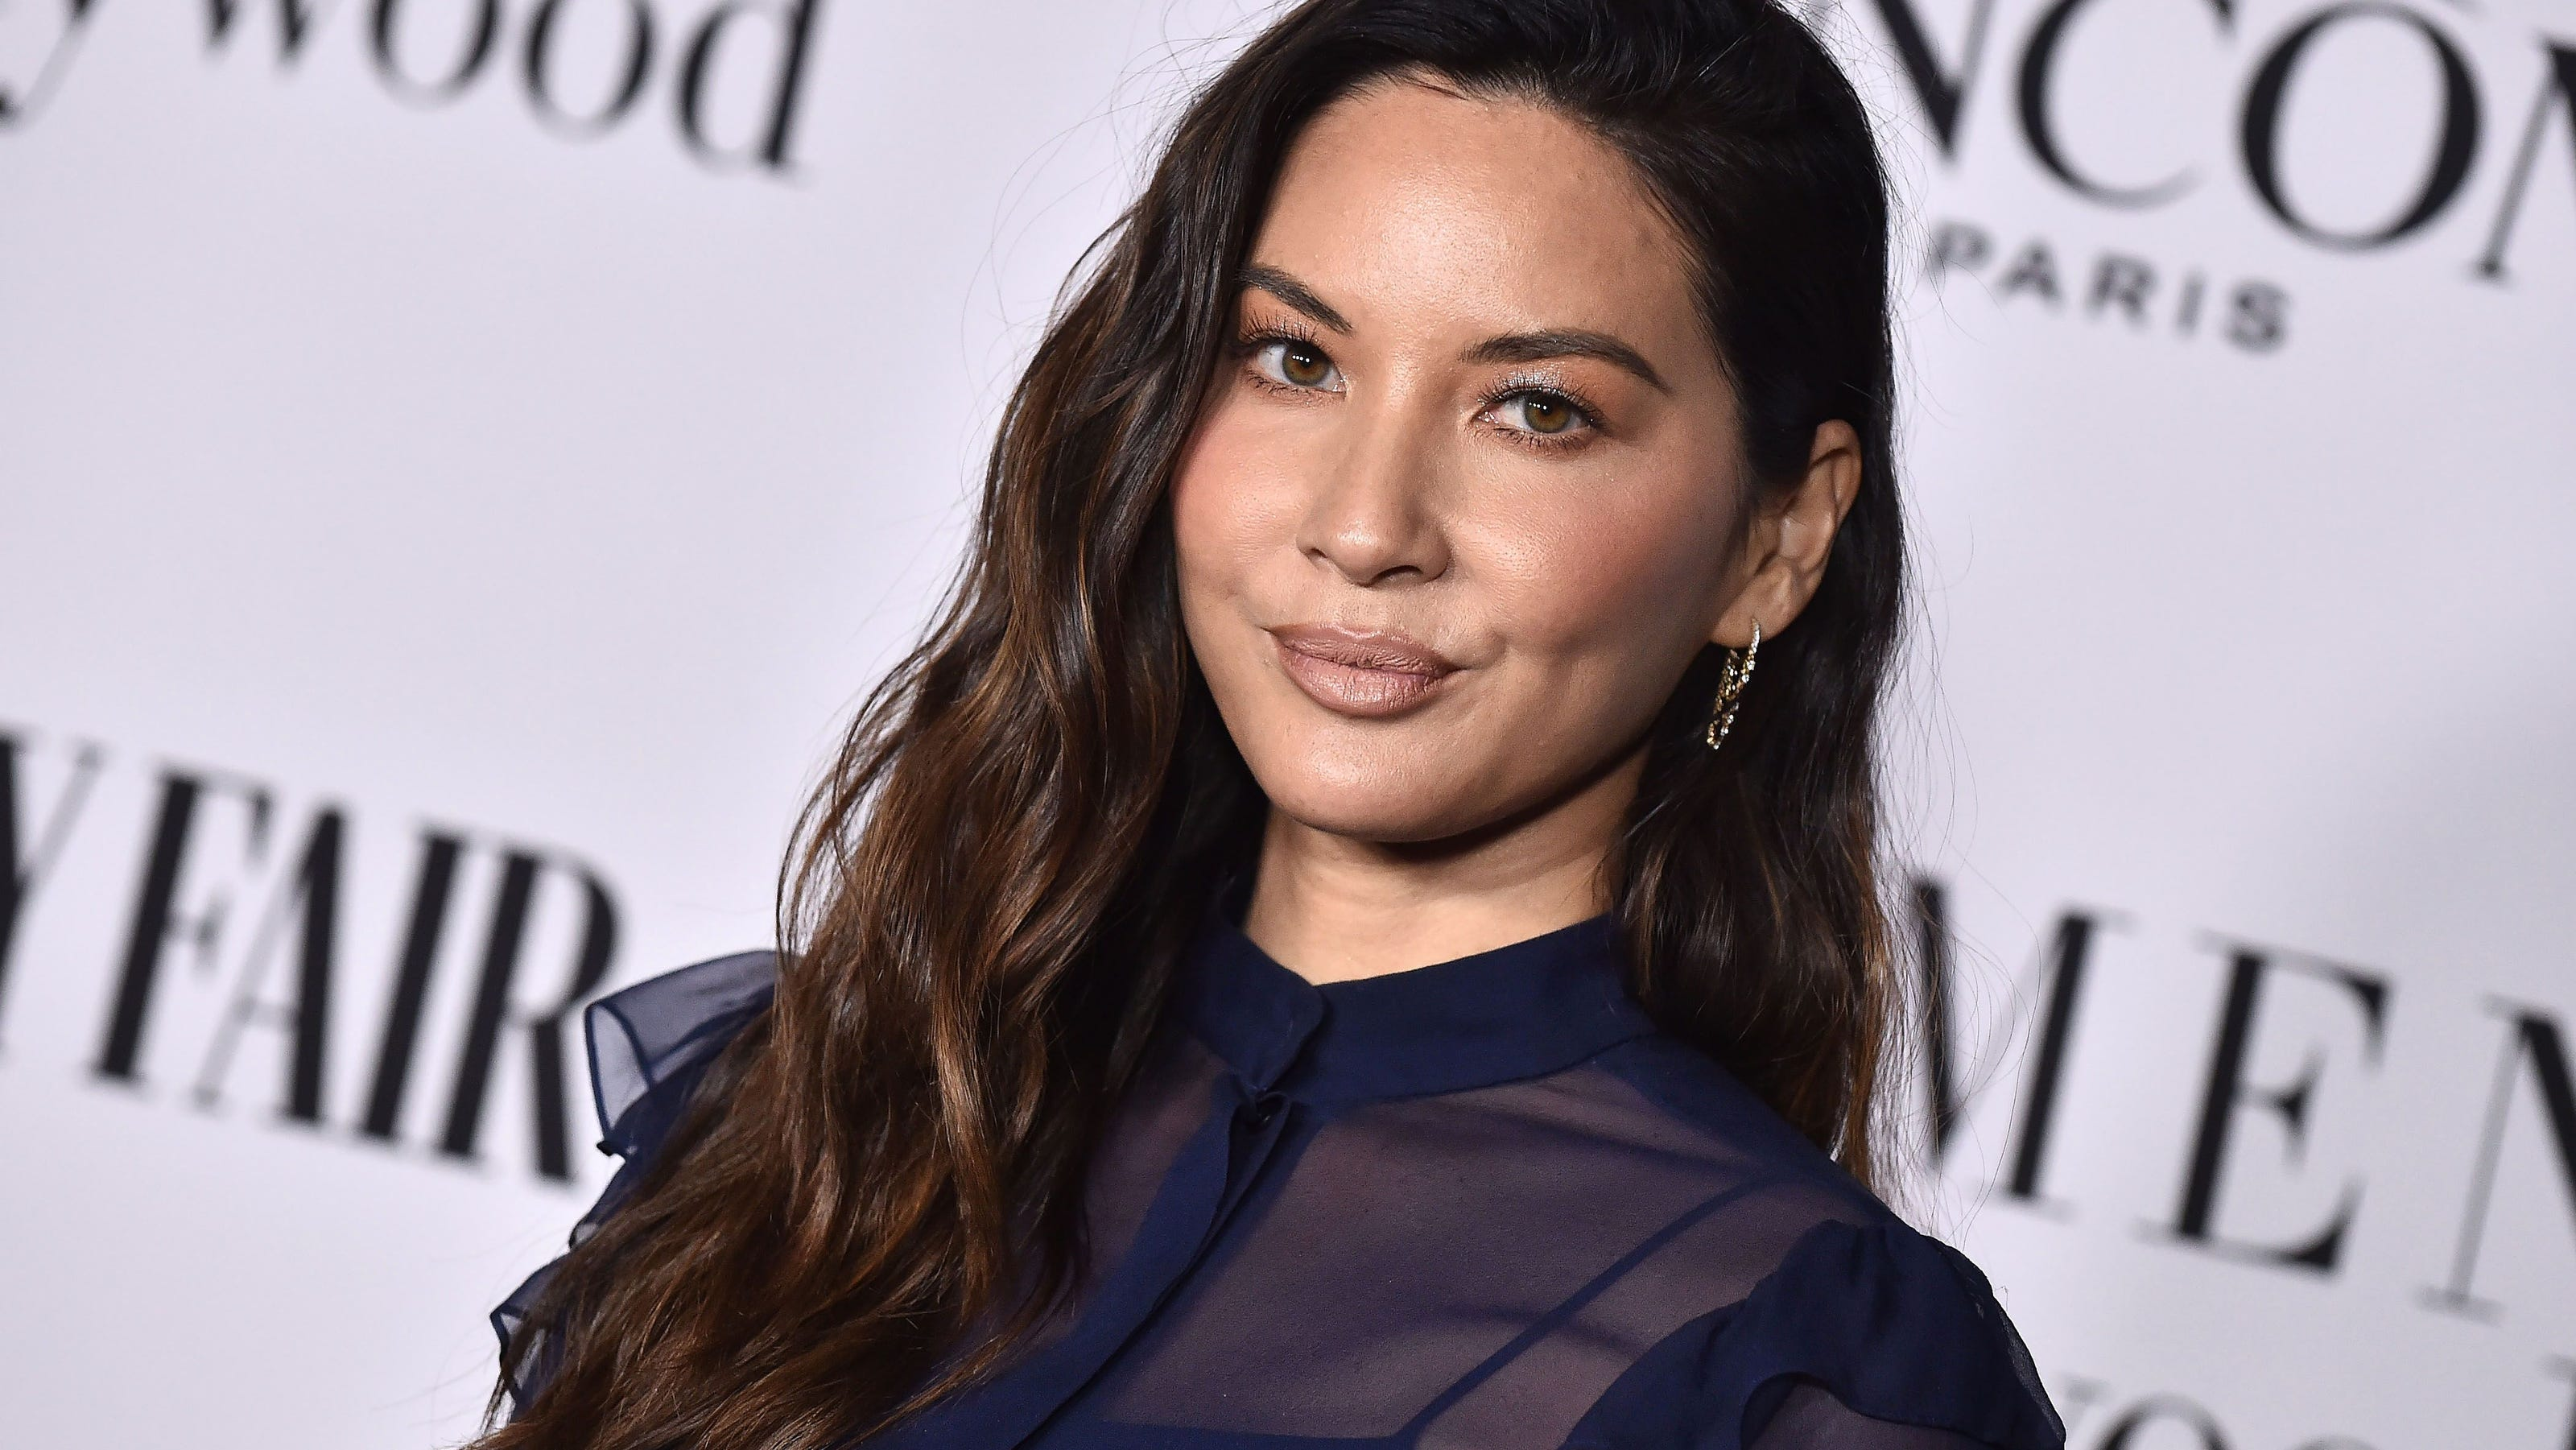 www.usatoday.com: Olivia Munn, Ken Jeong 'remember the history of racism' against the Asian community in new PSA